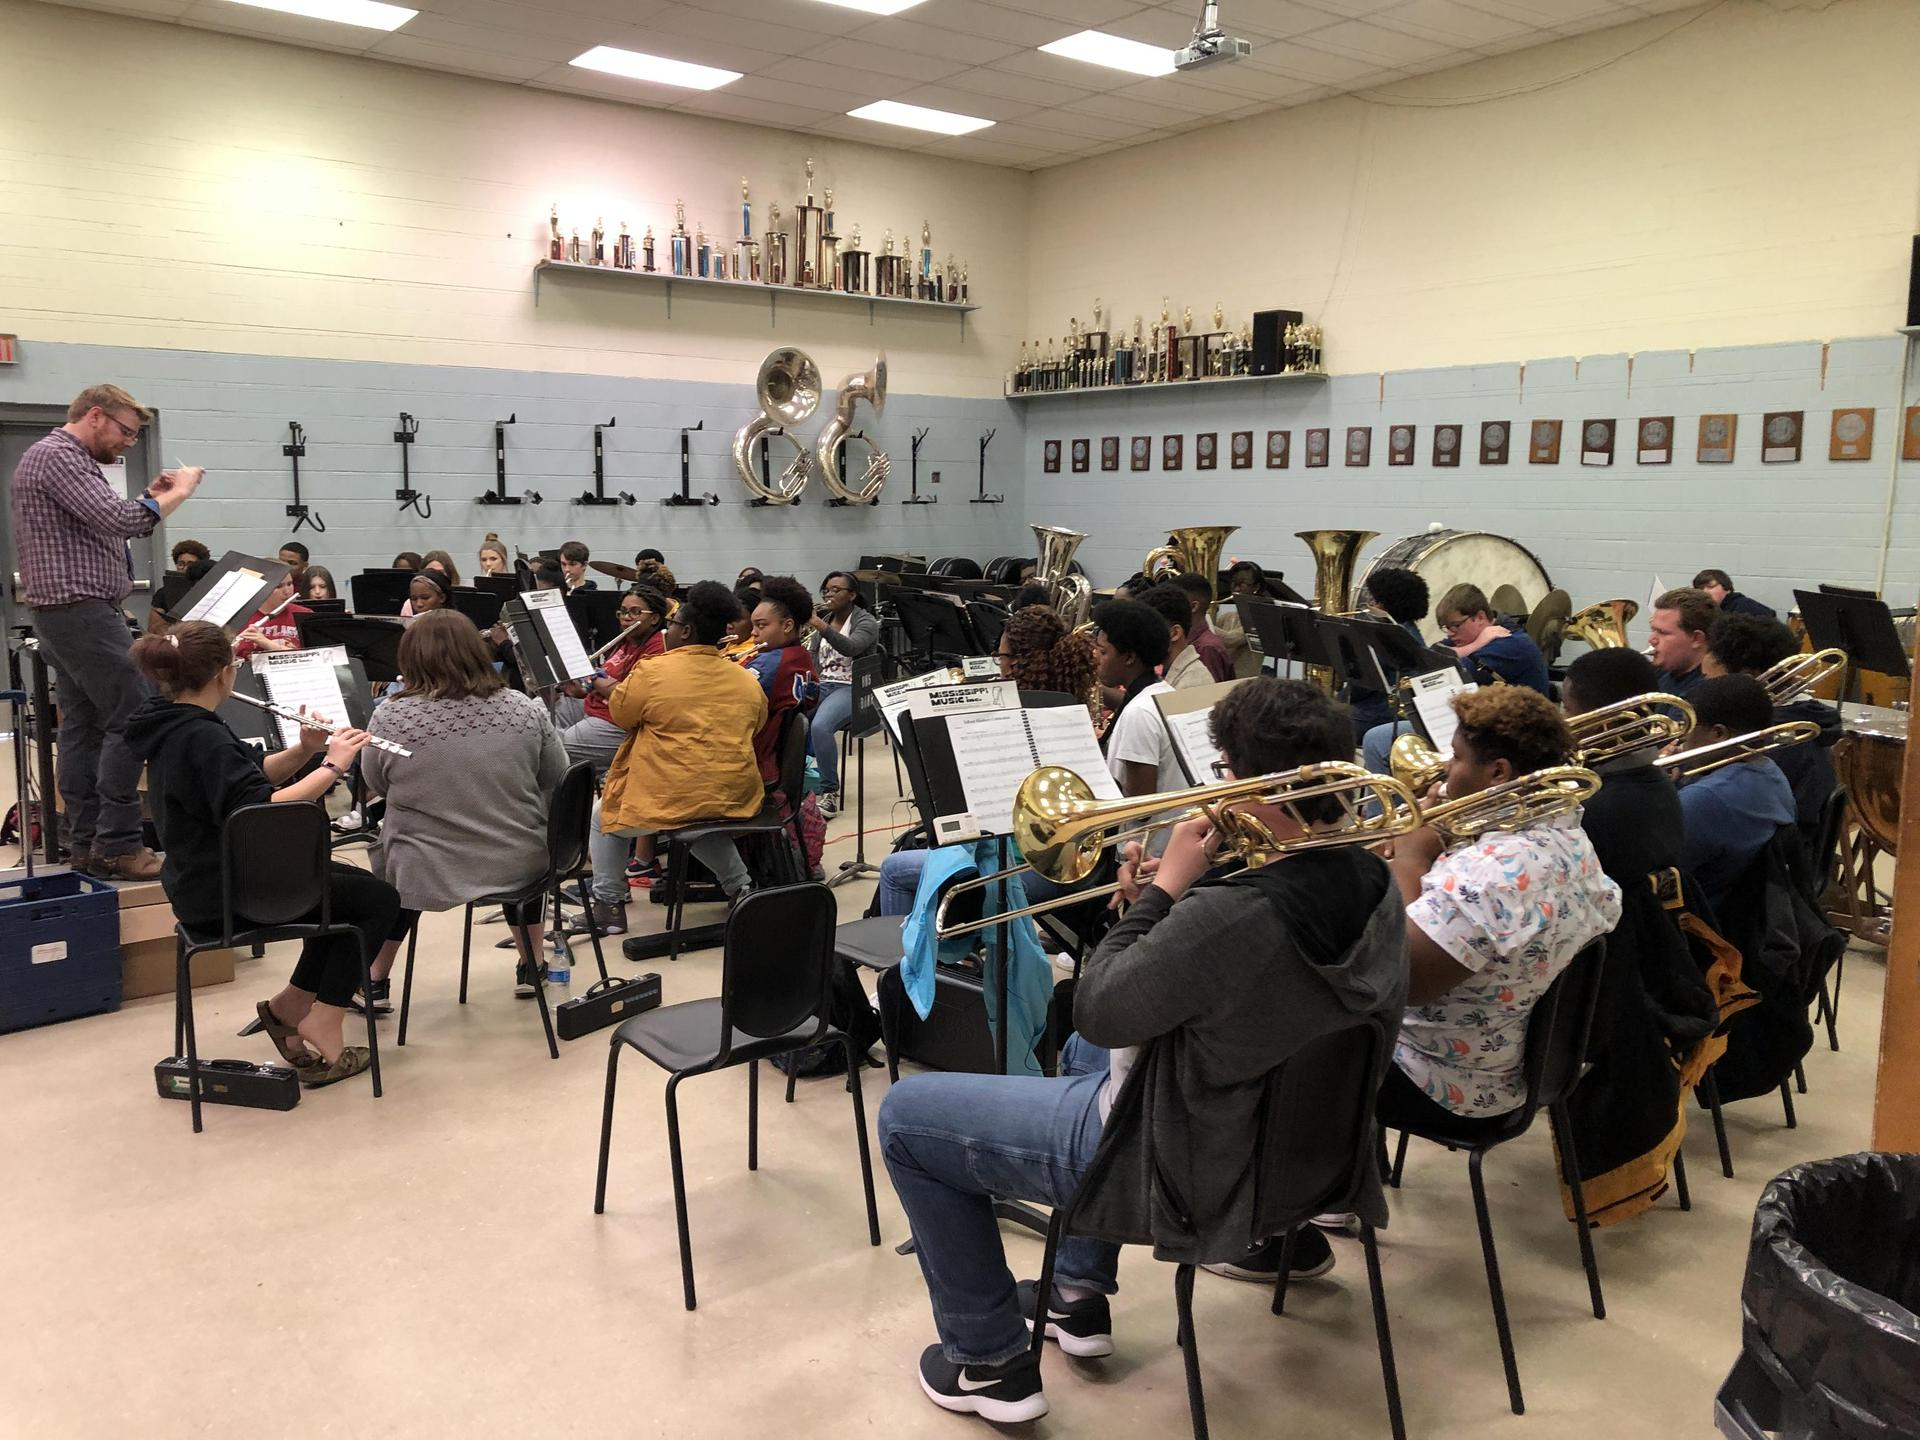 Current Band Hall with 1/4 Band Students